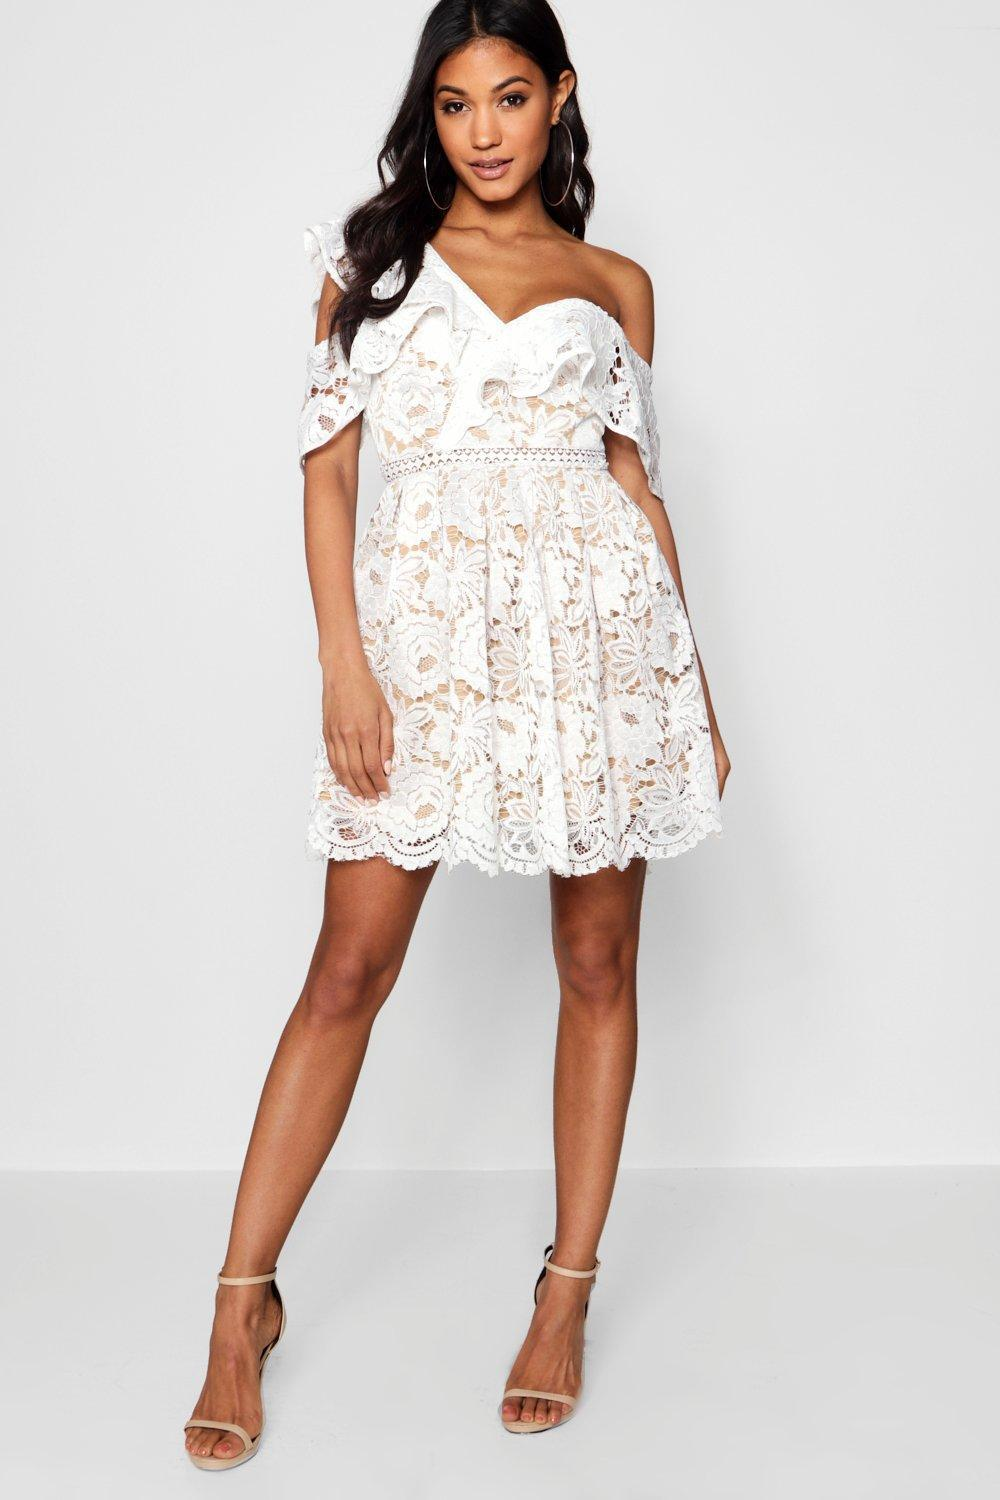 73edd9598836 Lyst - Boohoo Lace Off The Shoulder Skater Dress in White